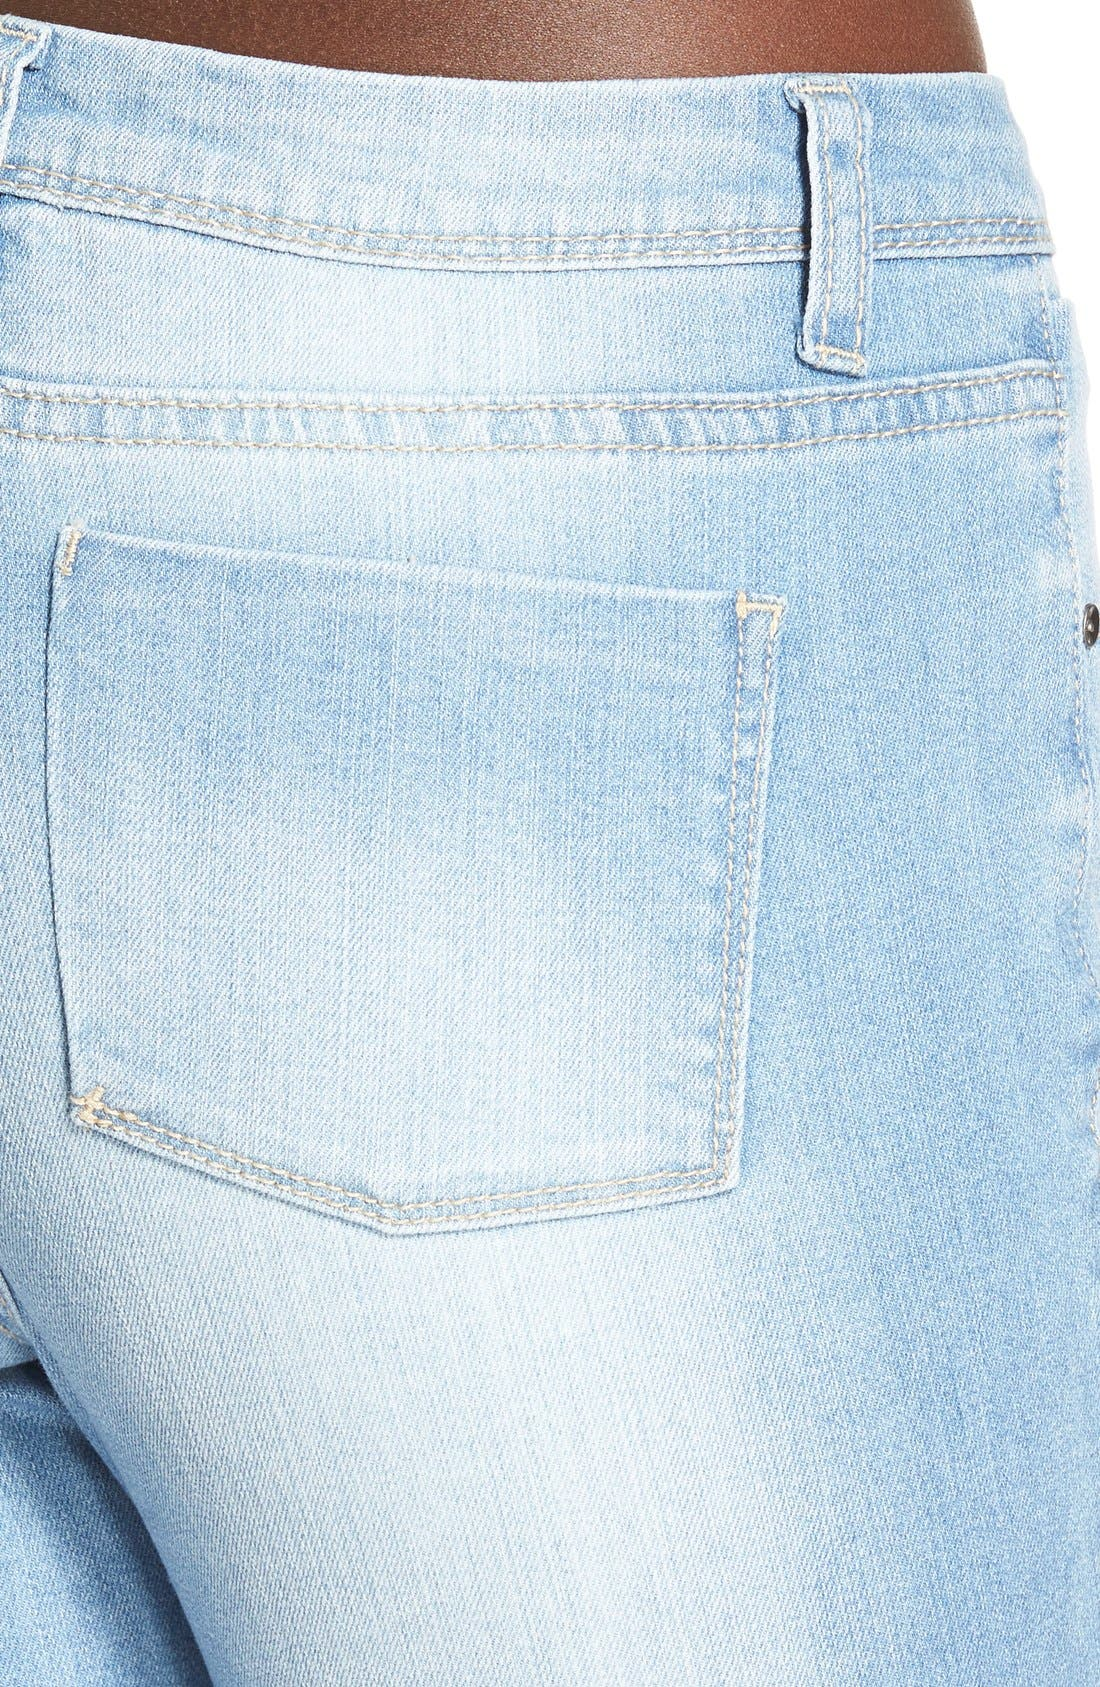 Alternate Image 4  - Generra High Waist Skinny Jeans (70s Blue)